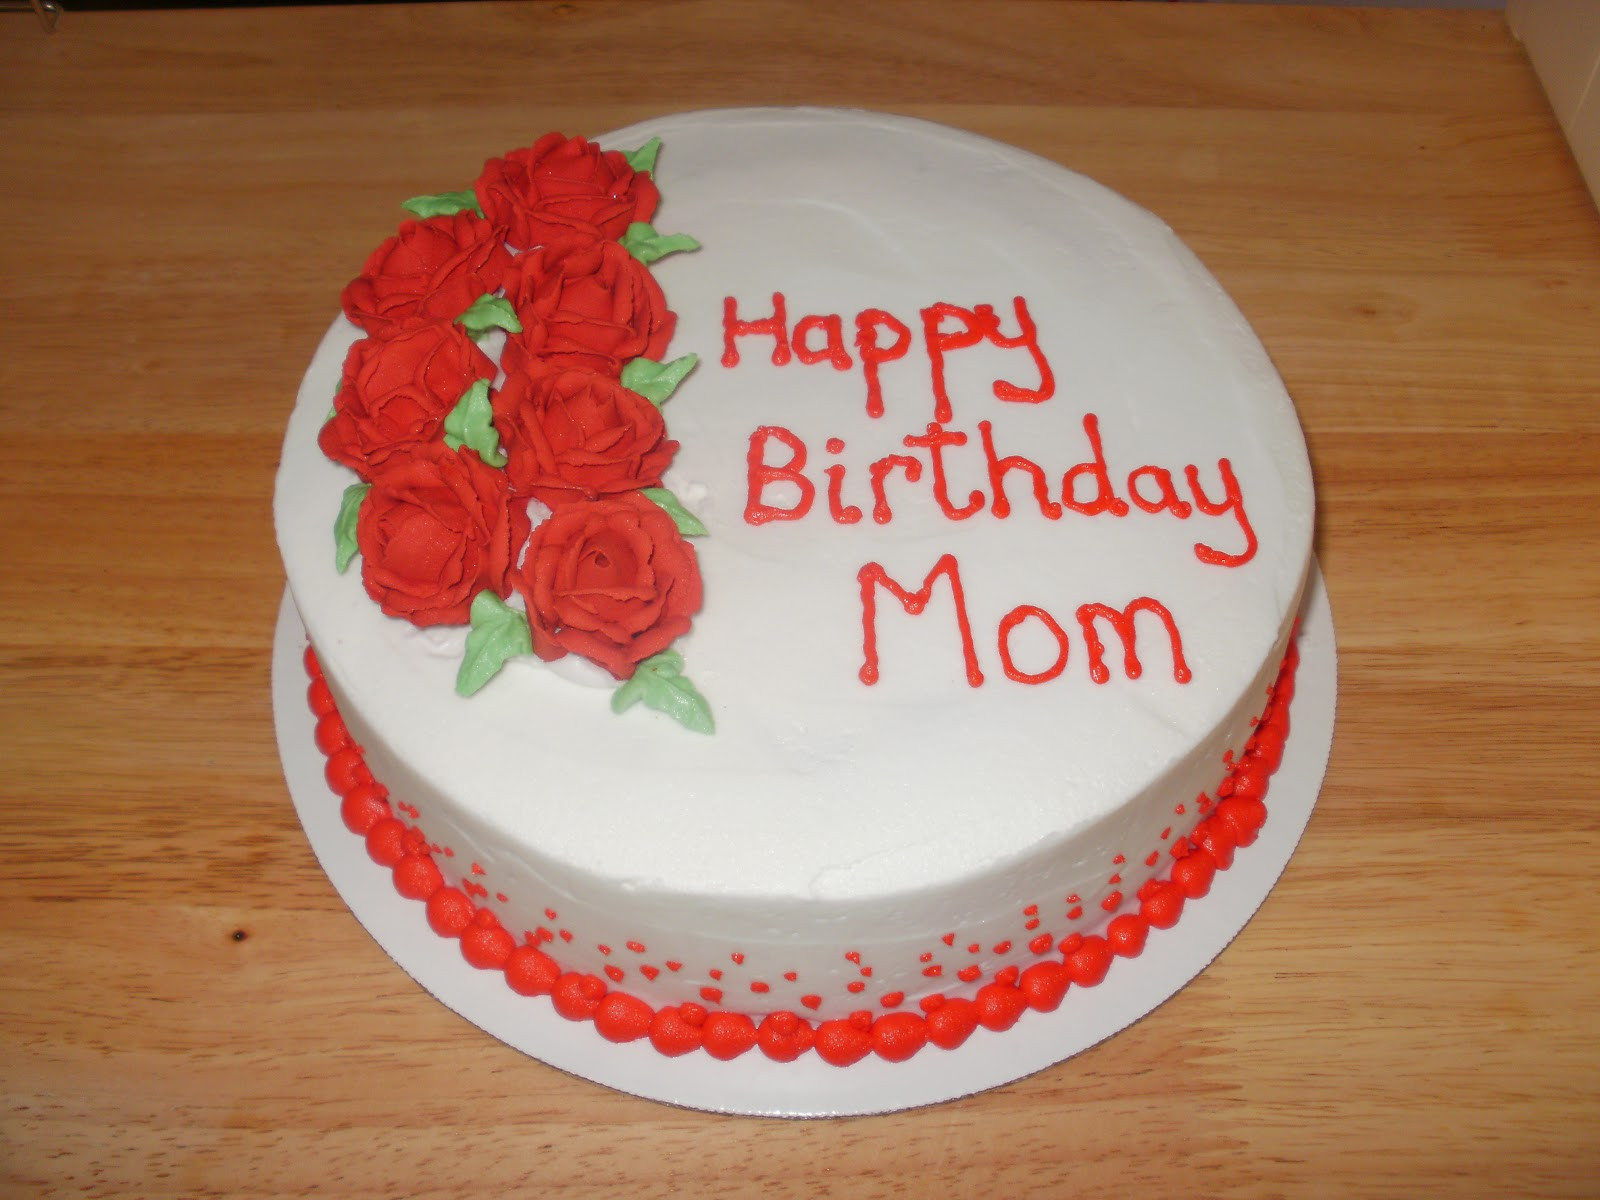 Best ideas about Happy Birthday Mom Cake . Save or Pin The Many Adventures of a Sunflour Cake Mom Happy Birthday Now.